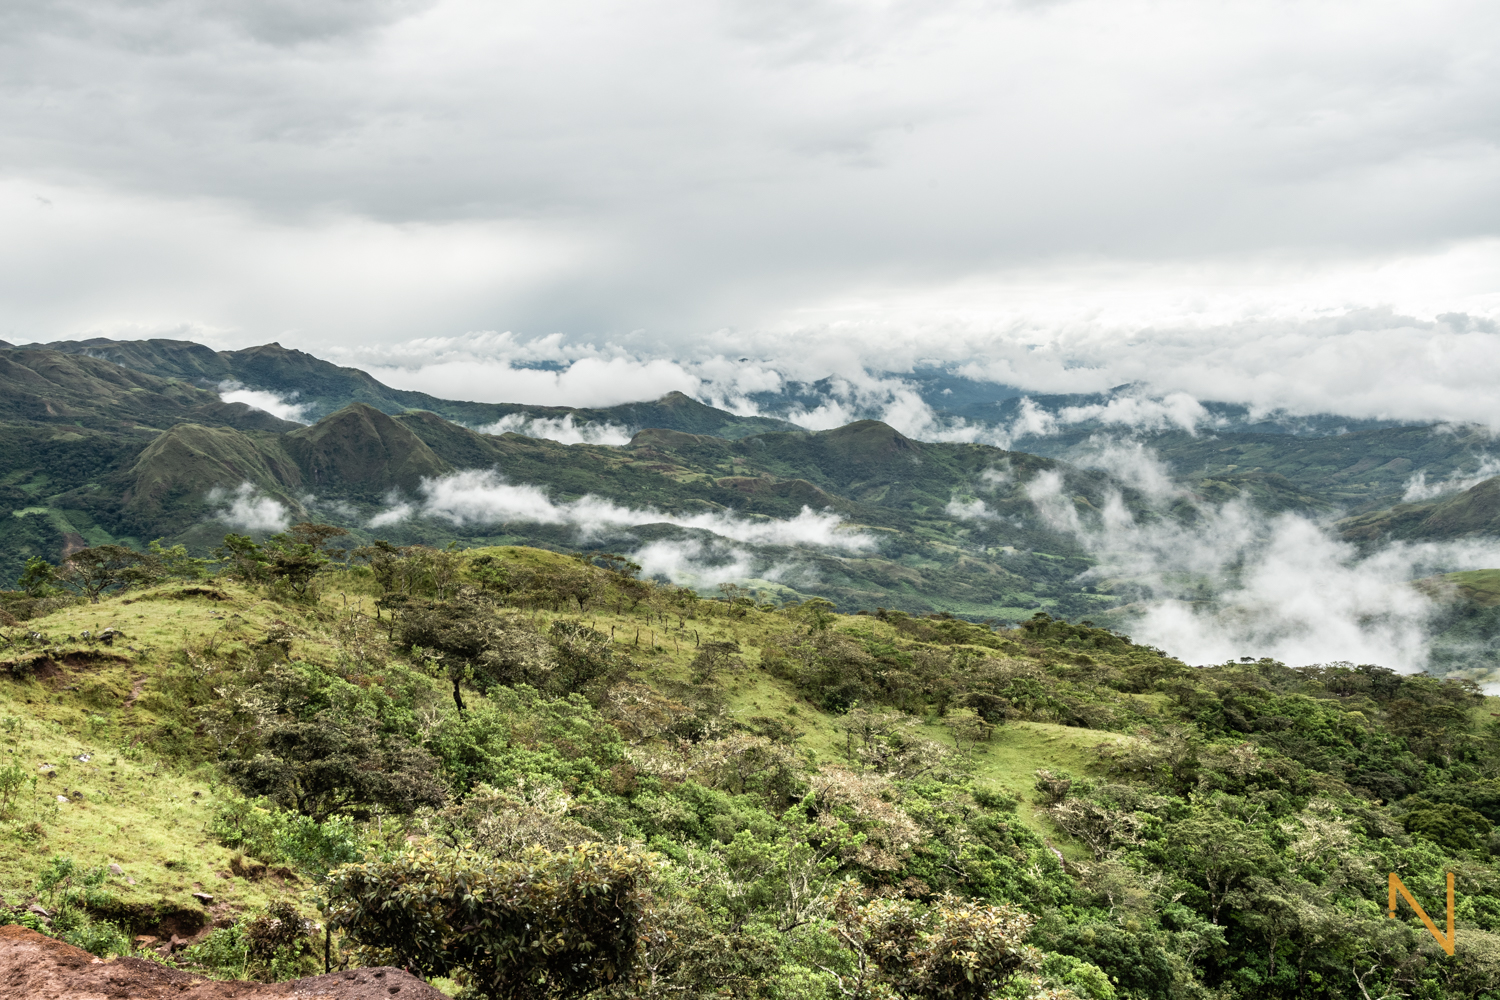 The  comarca  Ngäbe-Buglé from the mountains in Hato Chami.